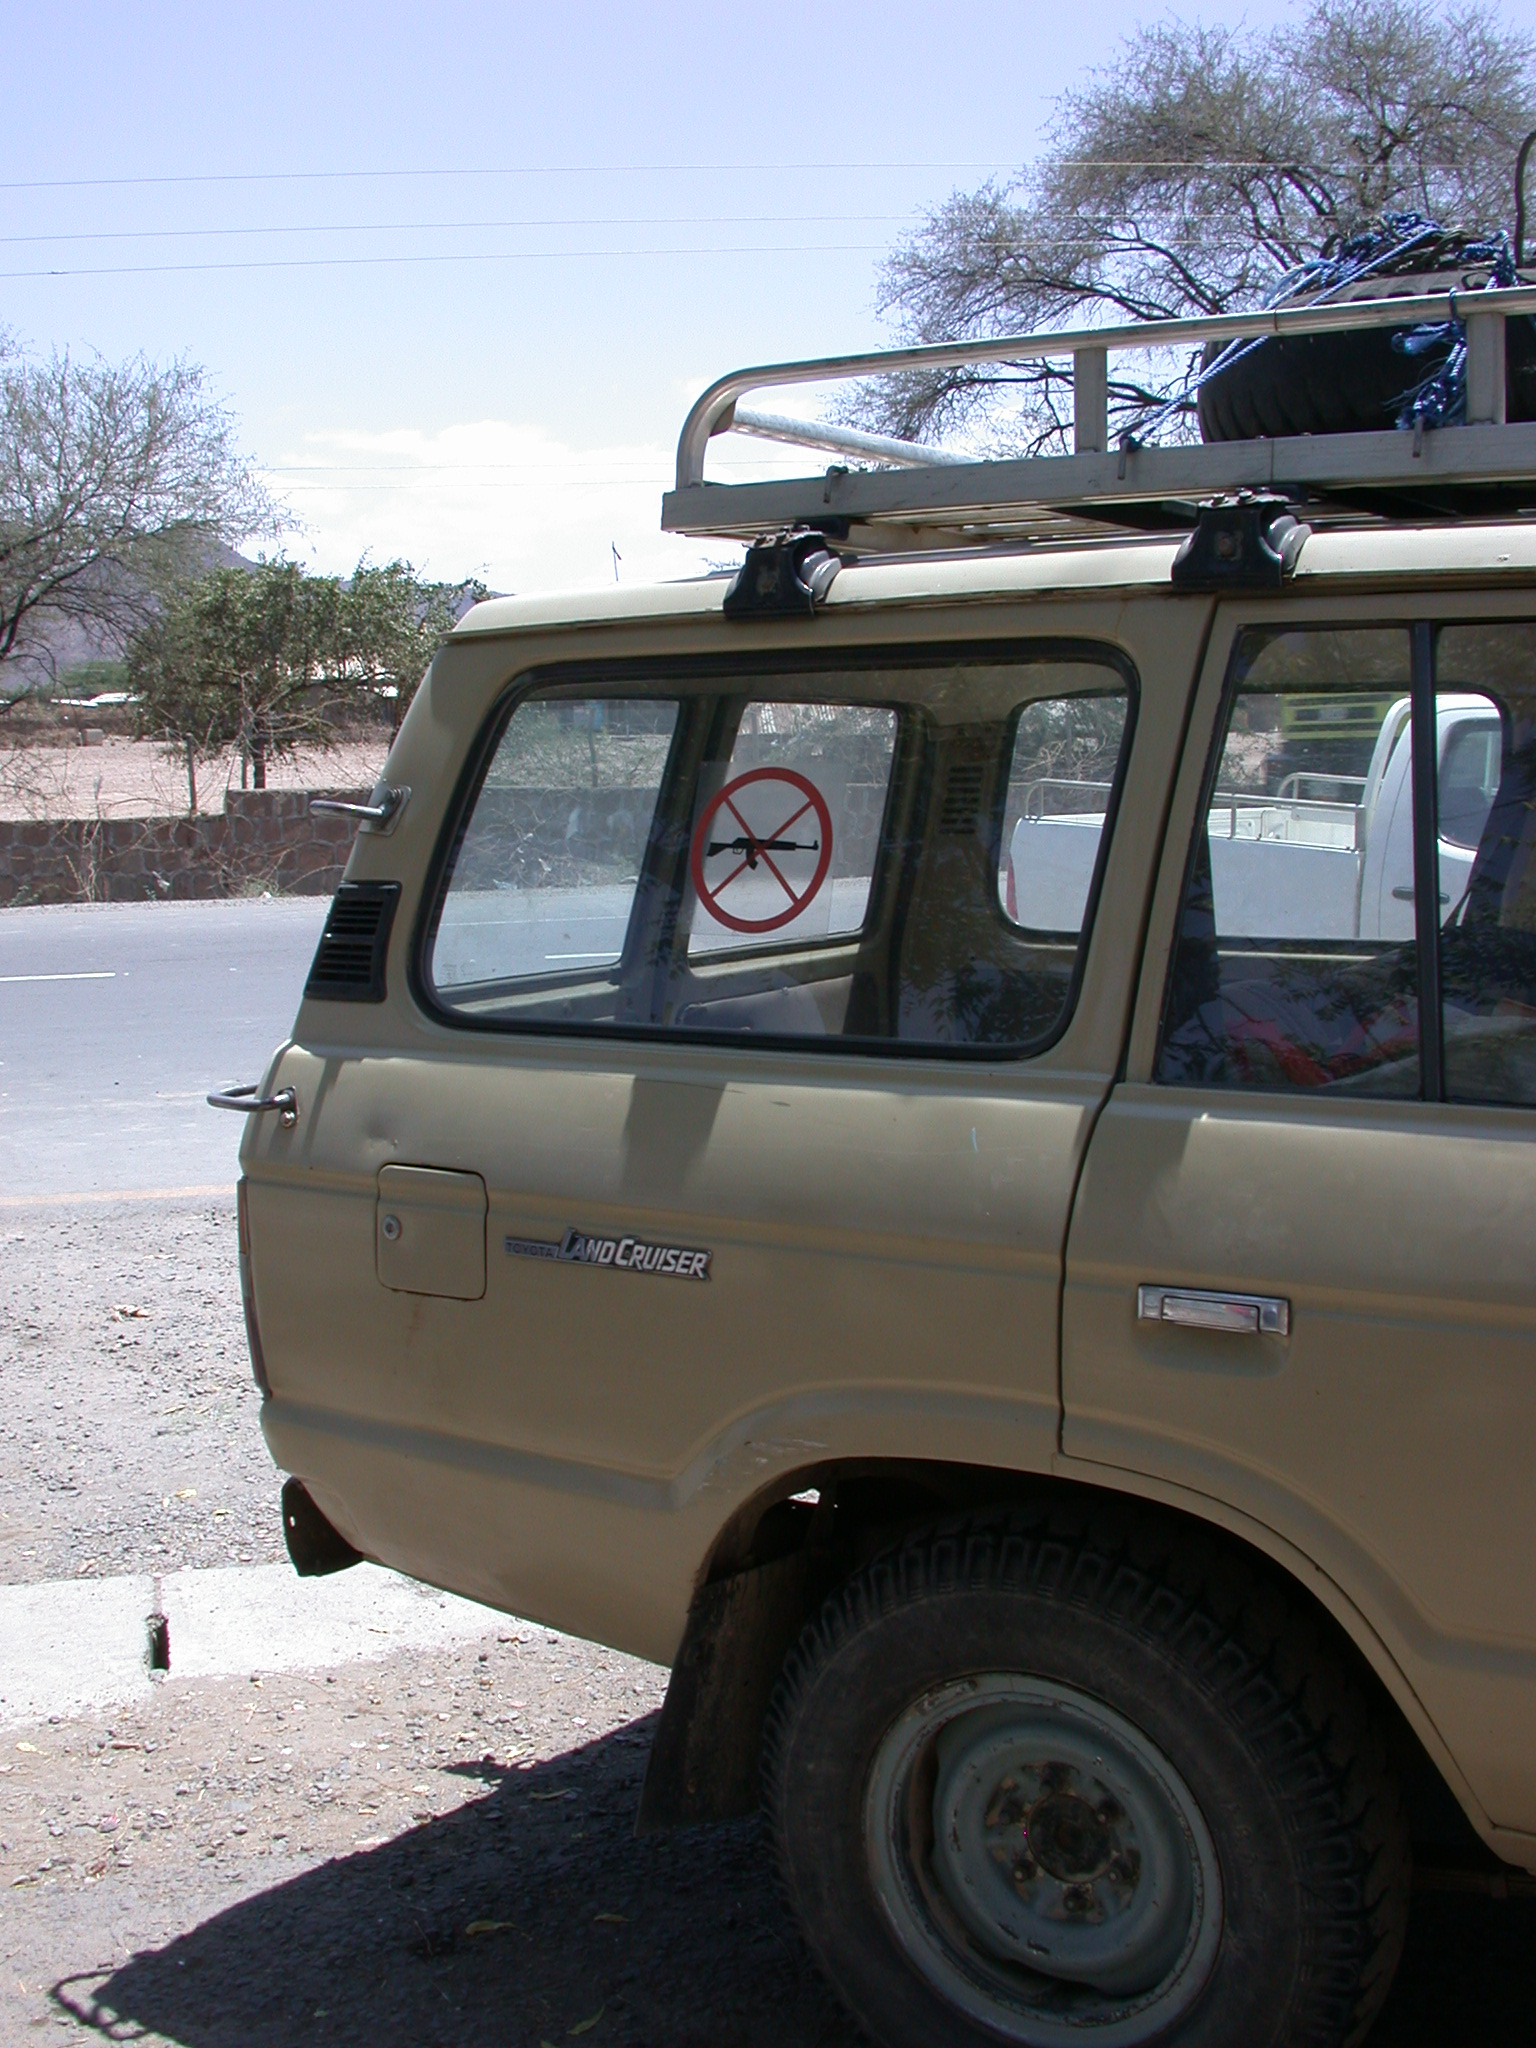 4WD Vehicle With Anti-Gun Sticker on Road from Awash Saba to Addis Ababa, Ethiopia